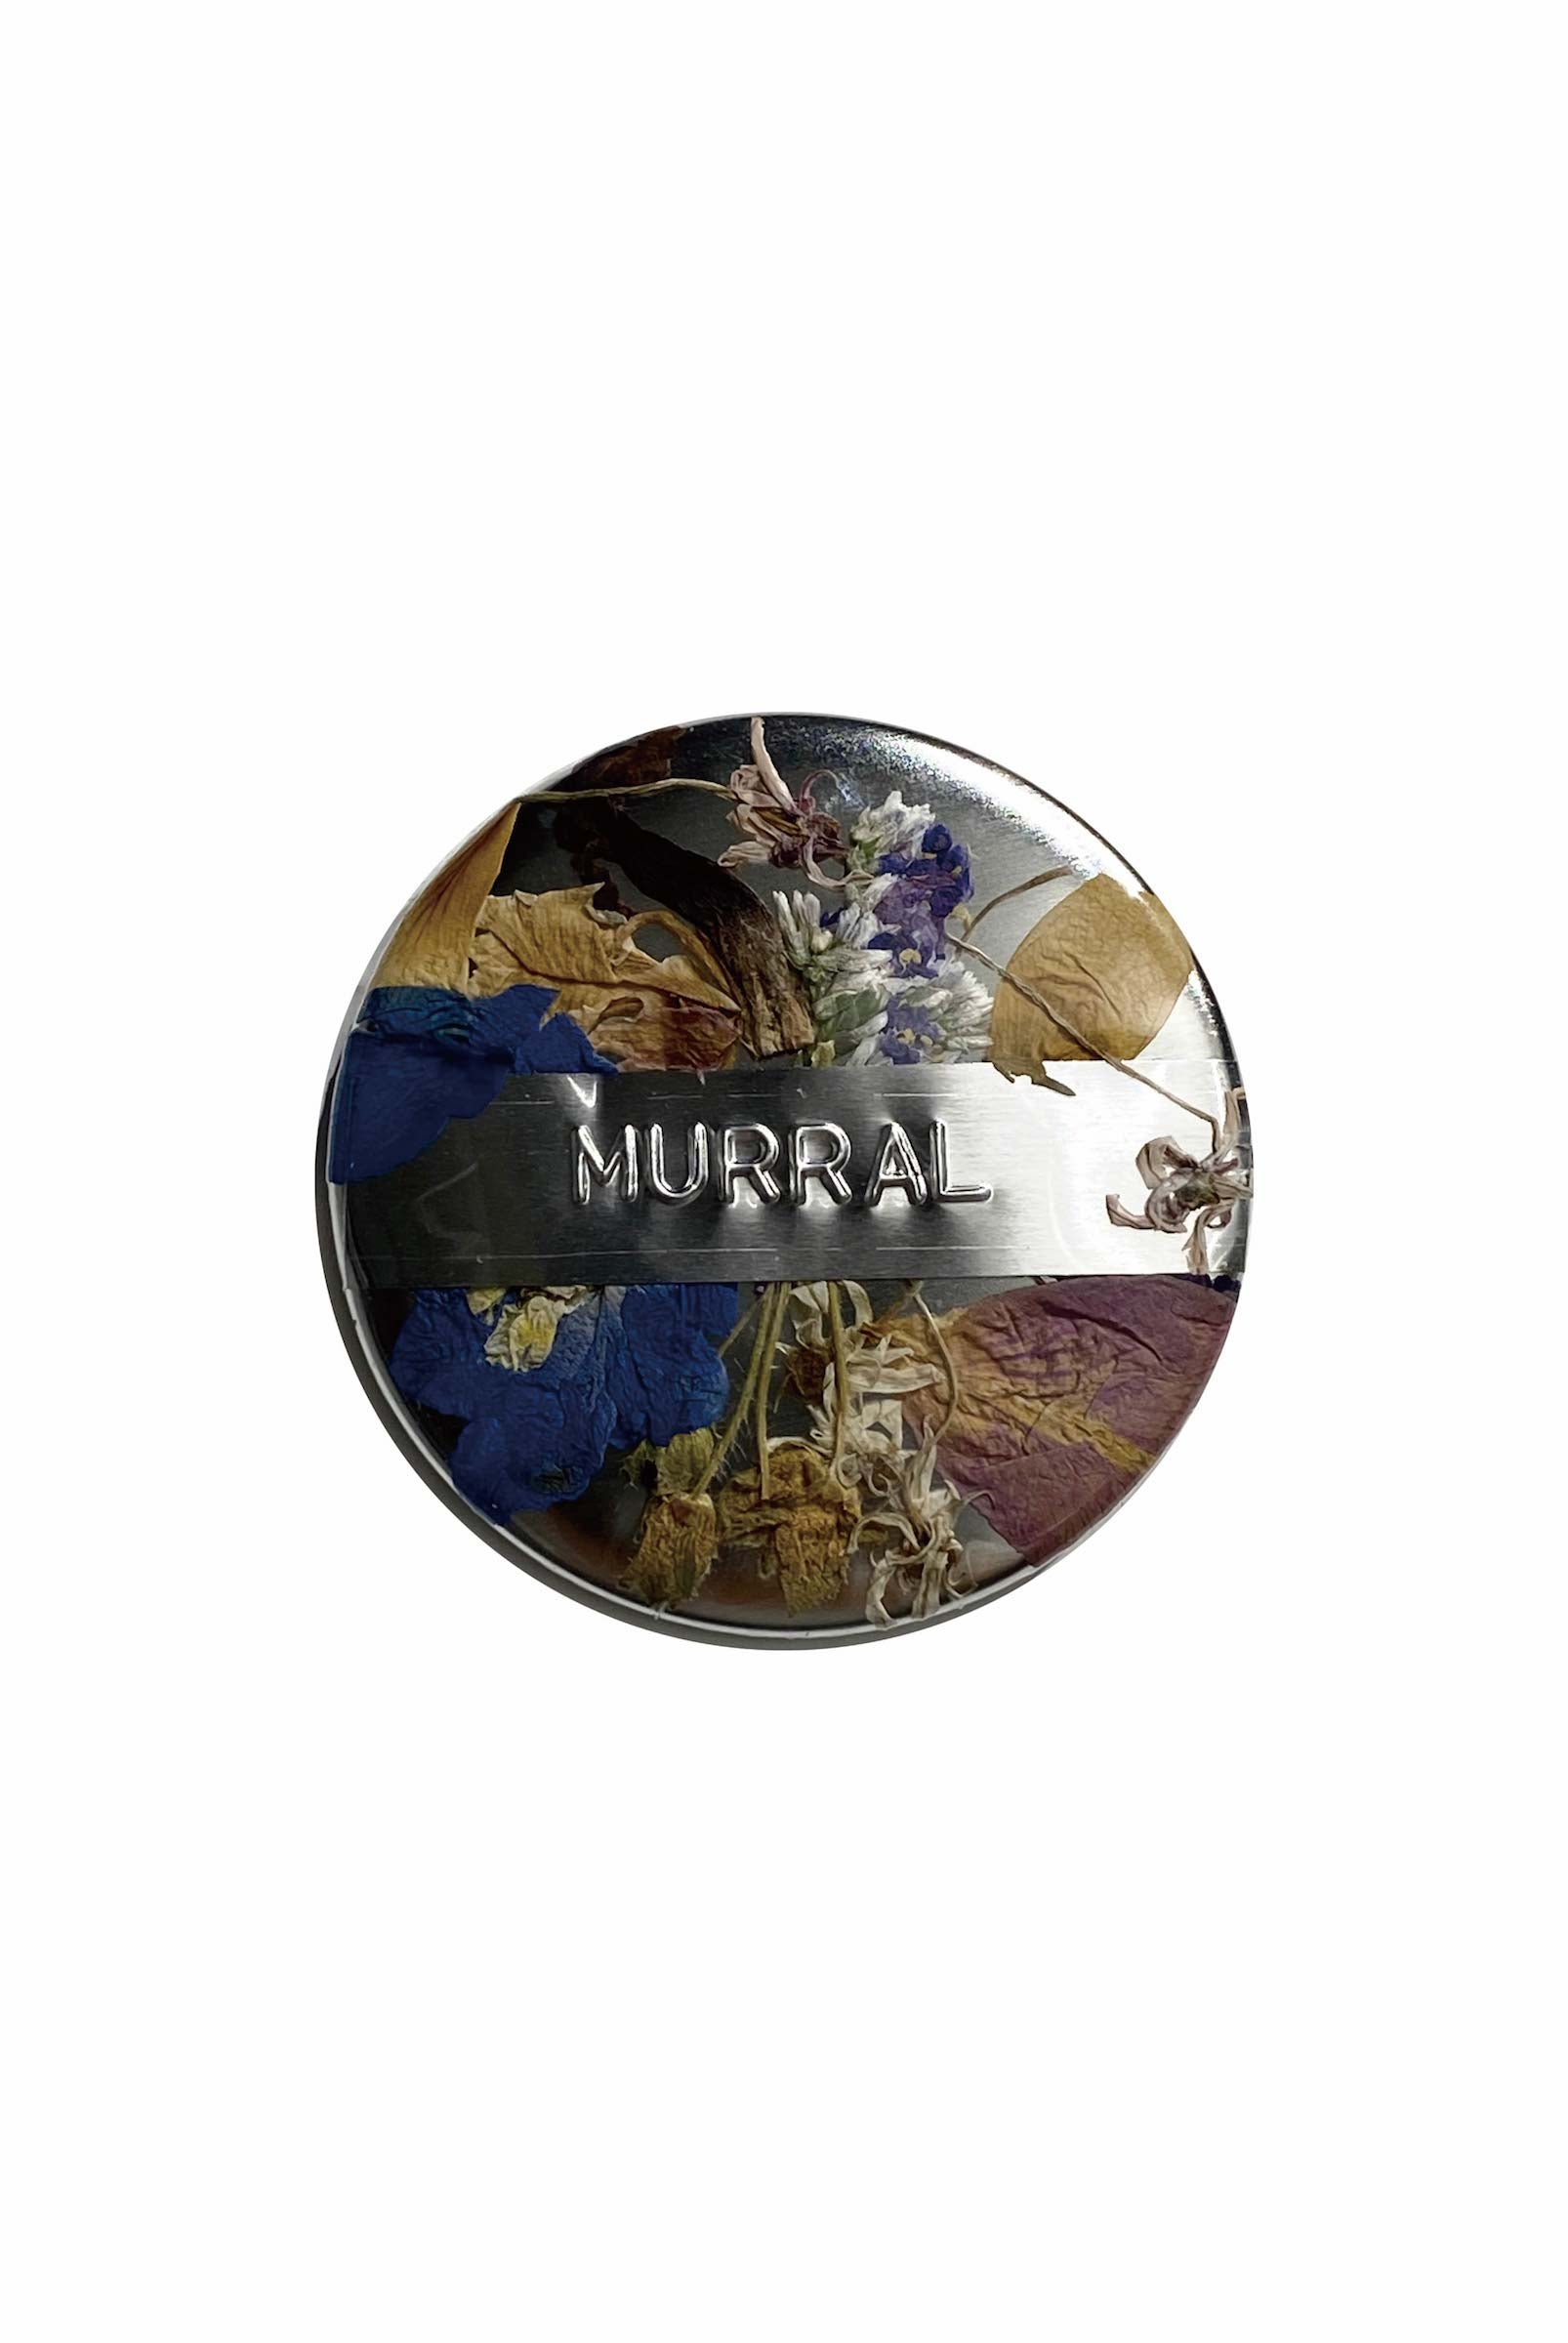 MURRAL order mirror for MURRAL